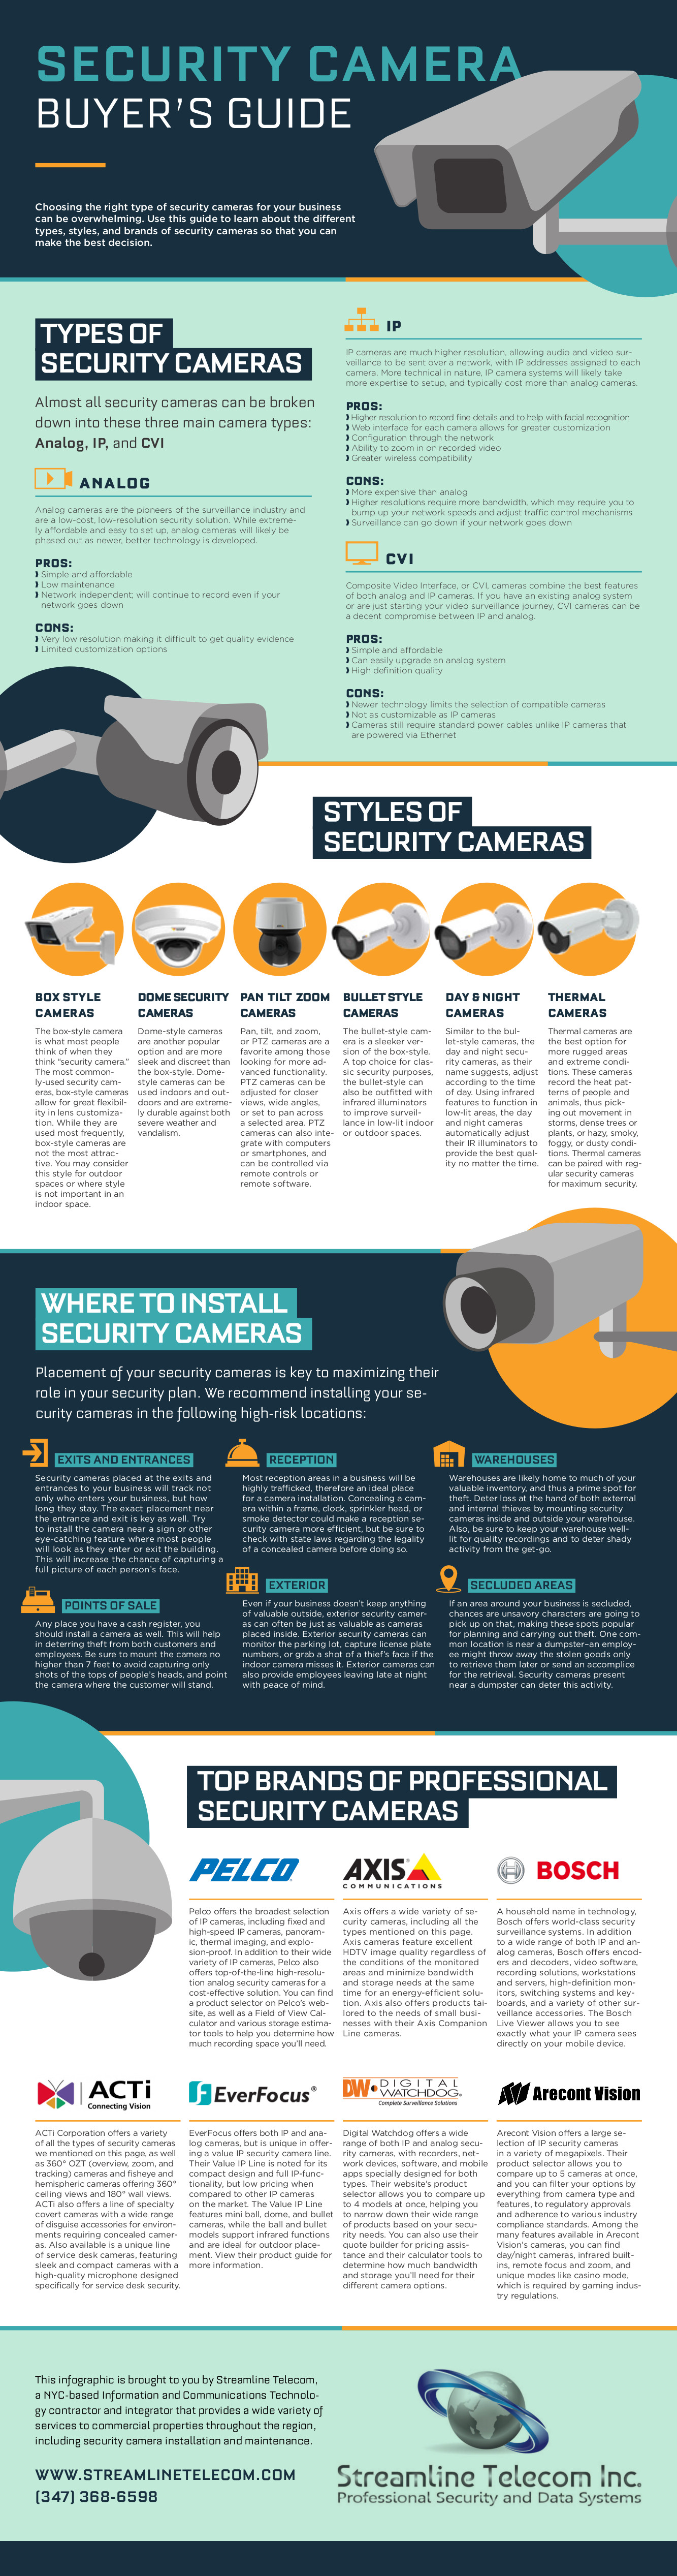 Security Camera Buyer's Guide